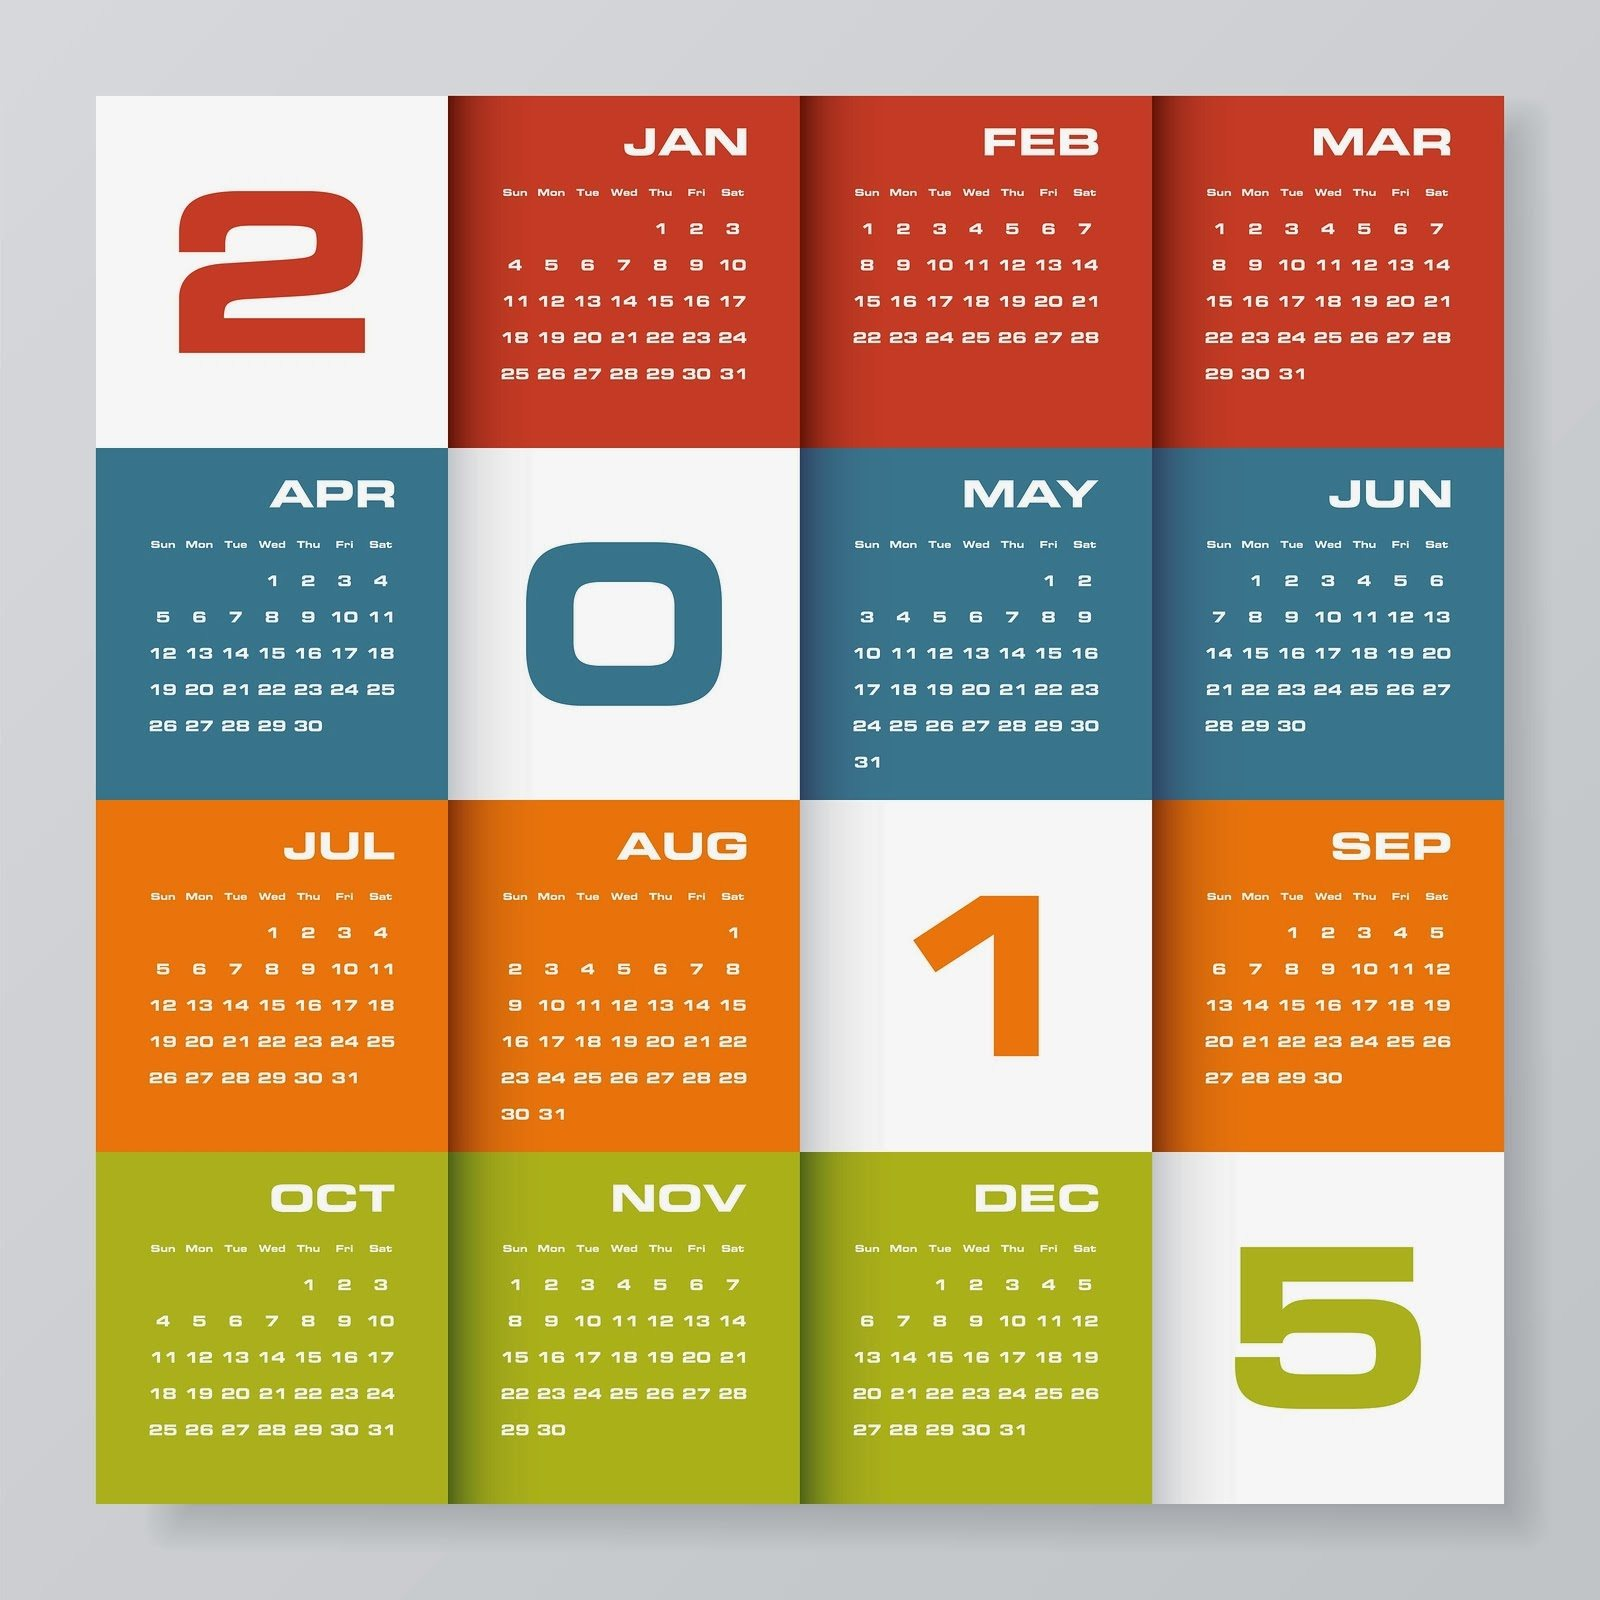 Calendar Design Pictures : Amazing calendar for year designs